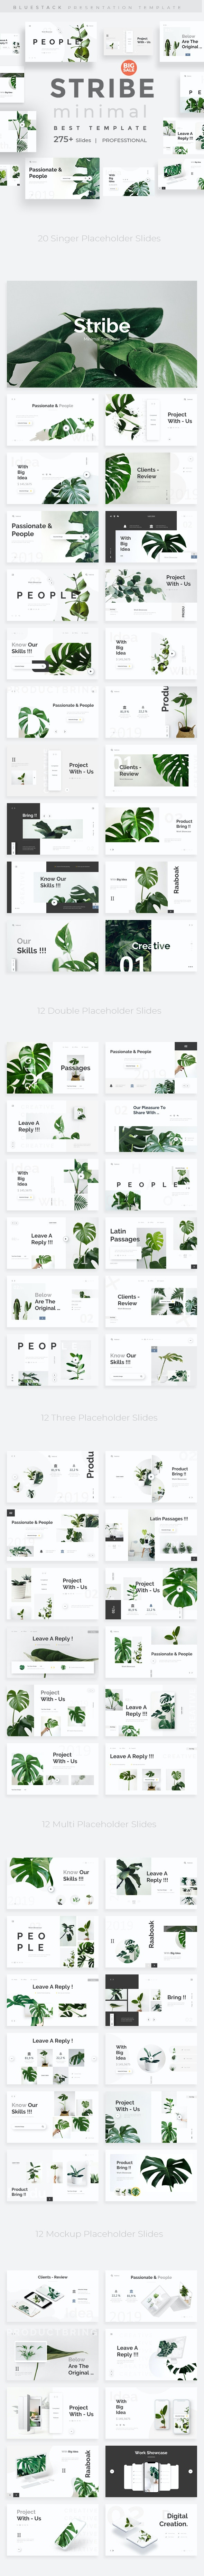 Stribe Minimal Design Powerpoint Template - Creative PowerPoint Templates